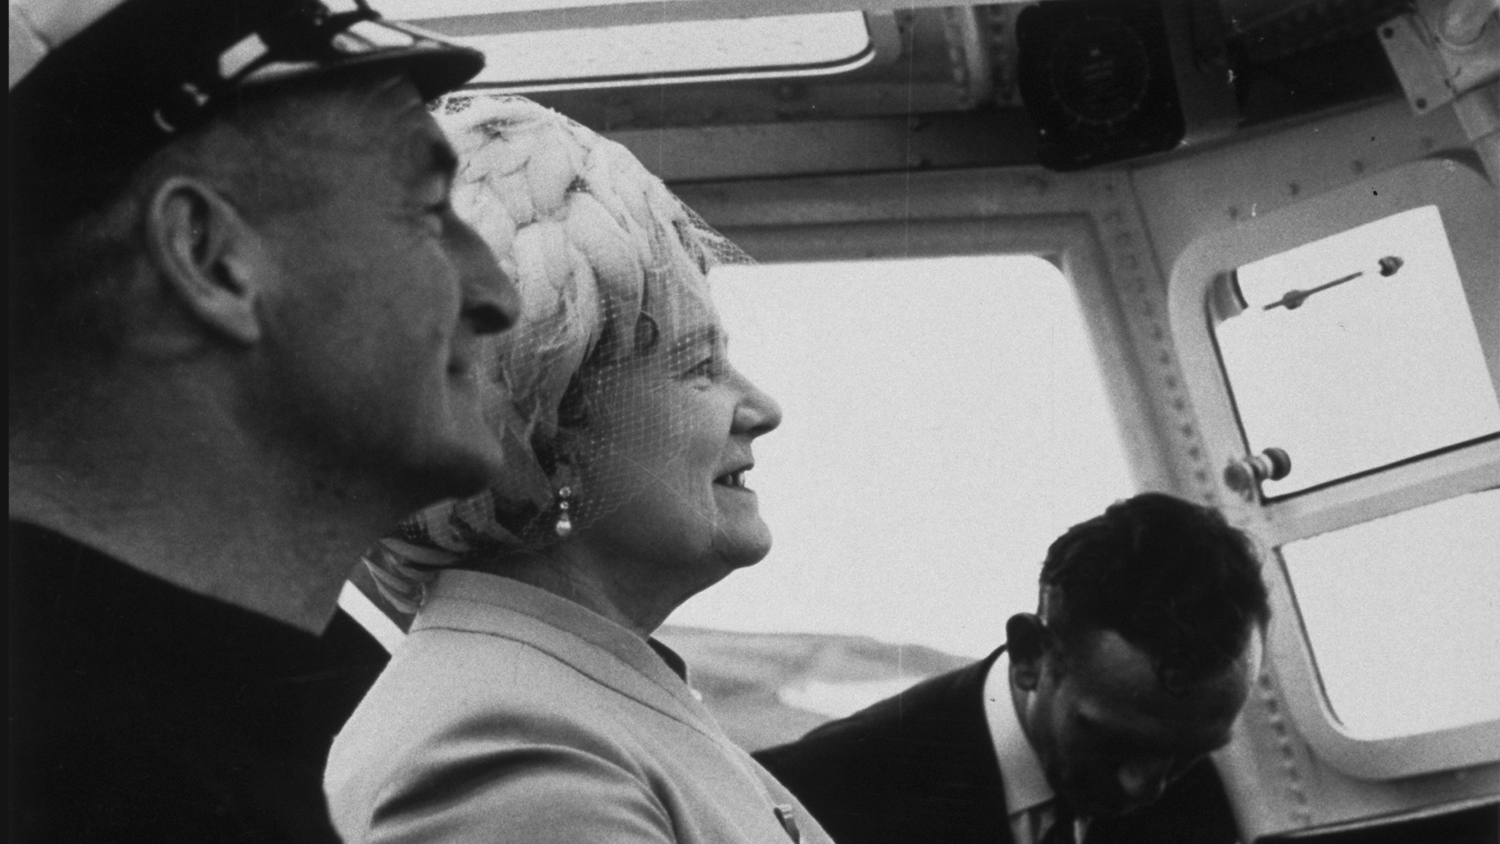 11 Aug 1971. The Queen Mother takes the wheel of Thurso's new lifeboat The Three Sisters under the guidance of Coxswain Gilbert Reid at the naming ceremony